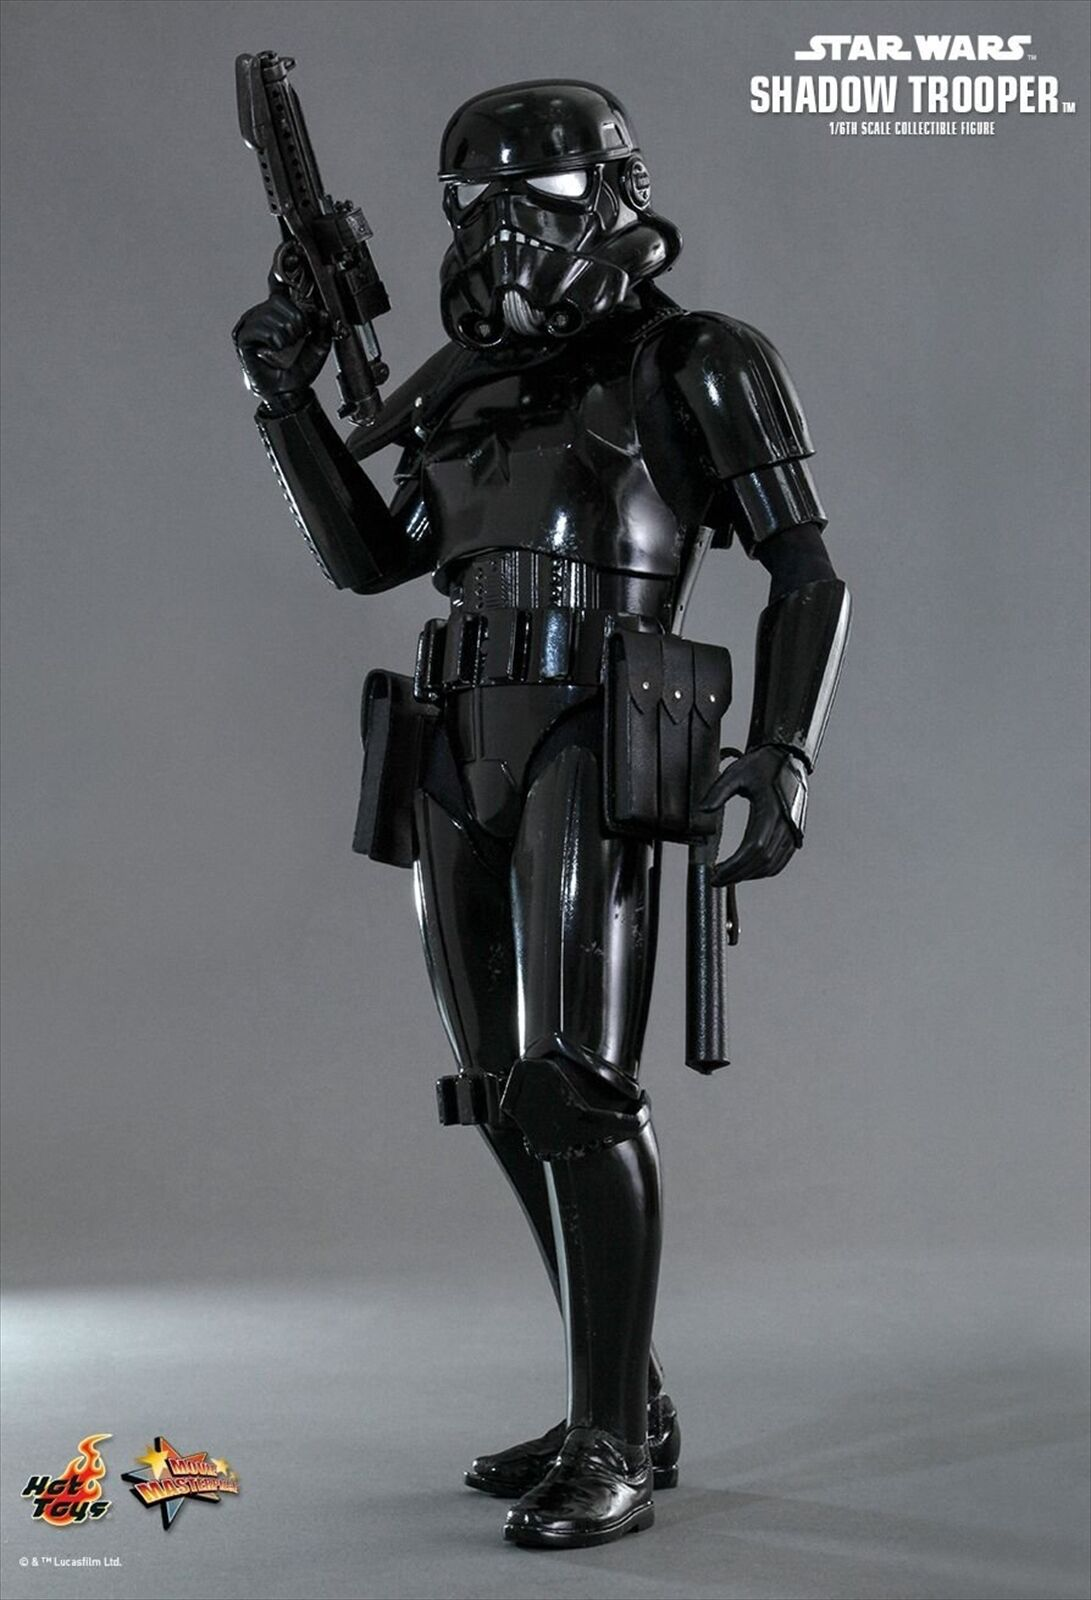 Hot Toys Star Wars Shadow StormTrooper 1/6 Scale Action Figure